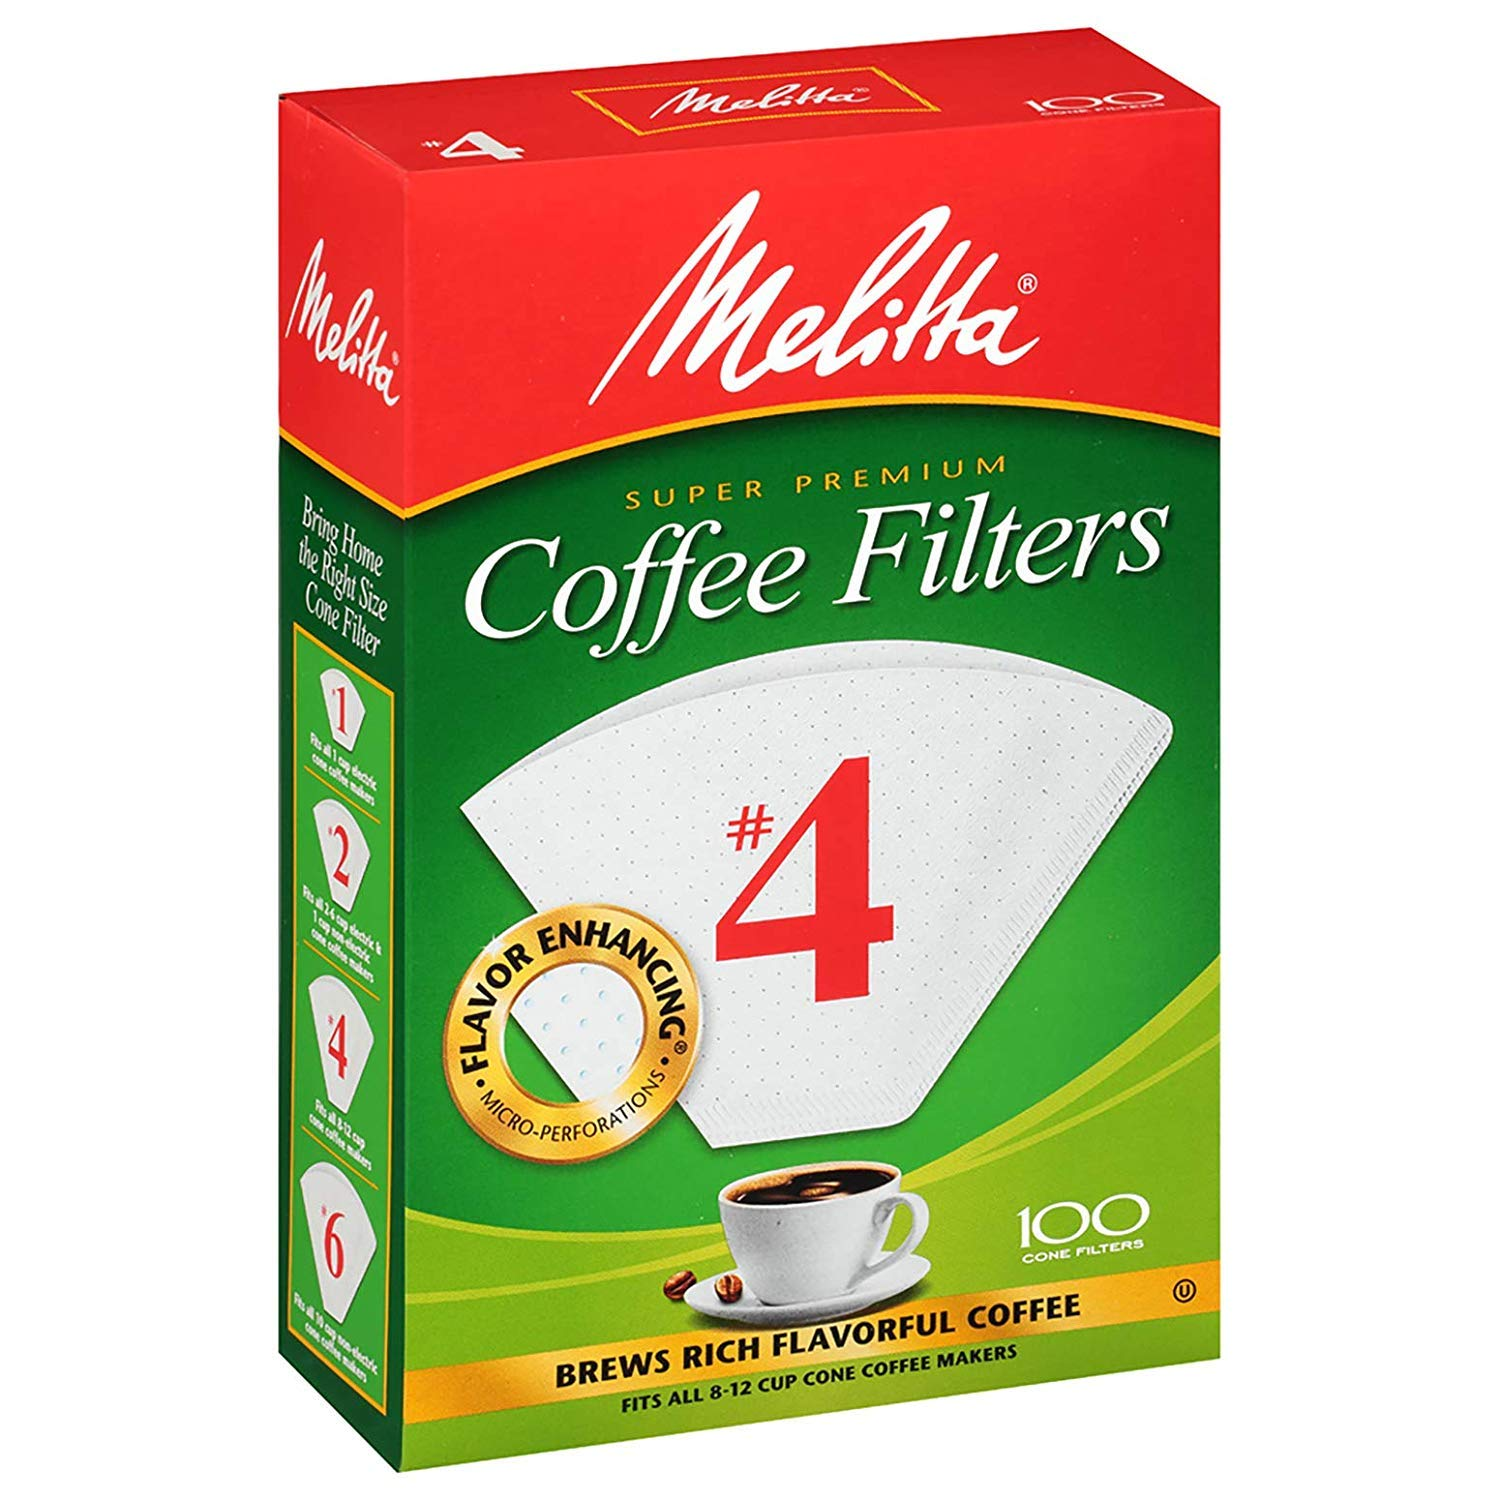 Melitta #4 Super Premium Cone Coffee Filters, White, 100 Count (Pack of 6) by Melitta